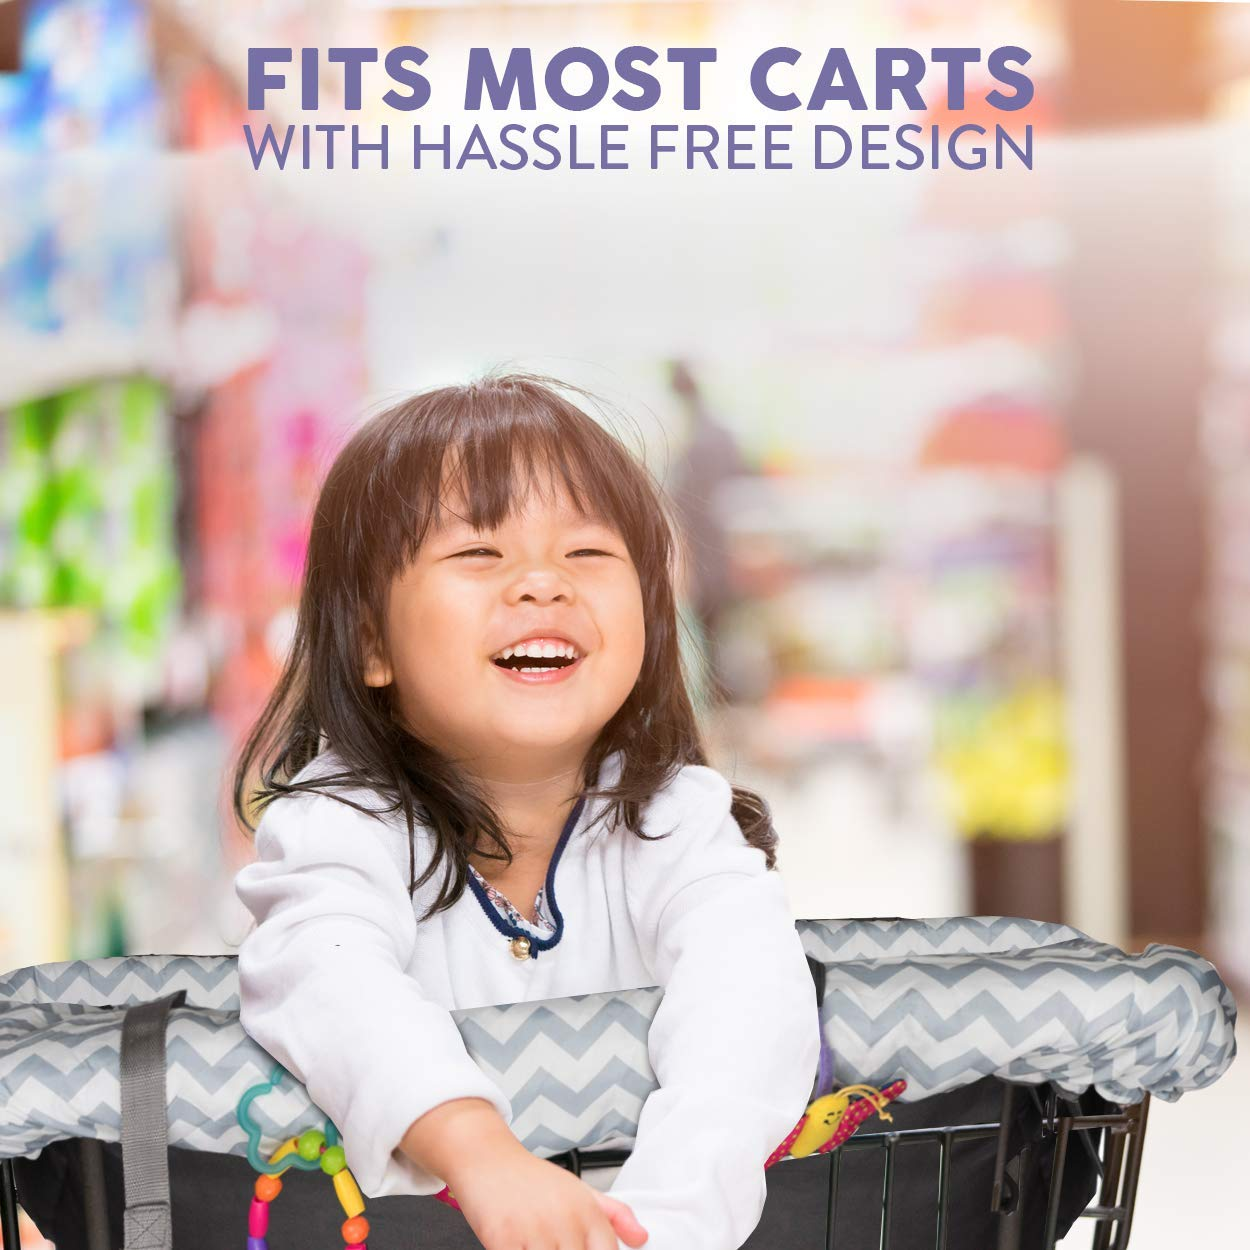 Baby Cart Cover with Cushion BabysDrive Shopping Cart Covers for Baby Loaded with Baby-Friendly Features Fits All Shopping Carts High Chair Cover